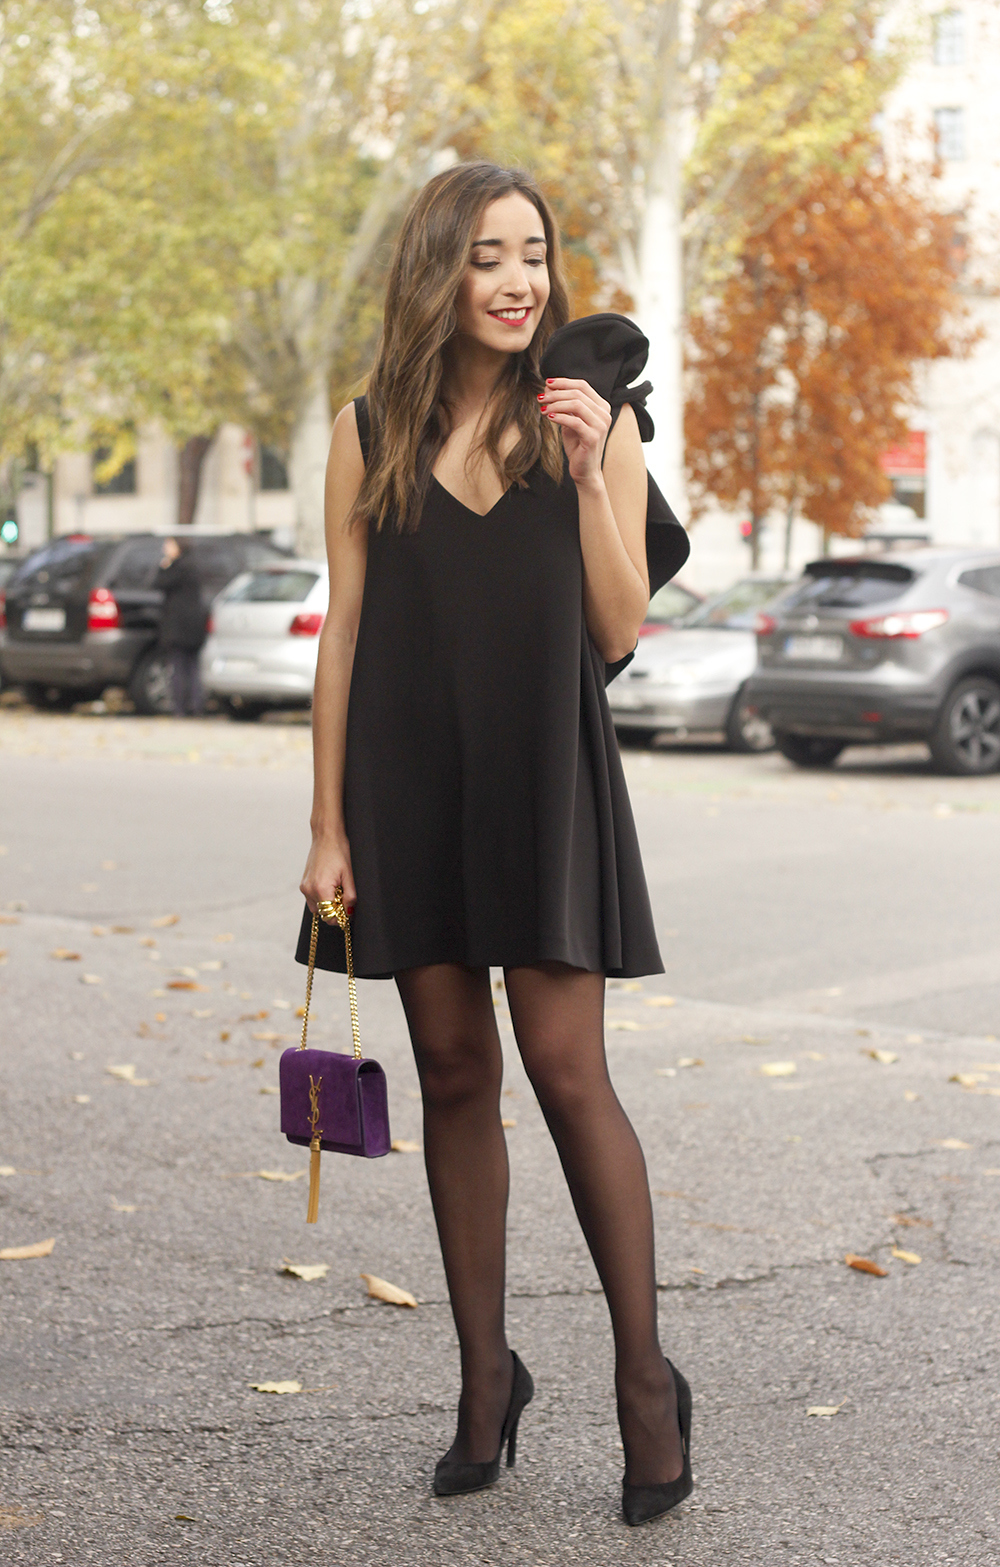 little black dress yves saint laurent bag accessories black heels outfit party look style08